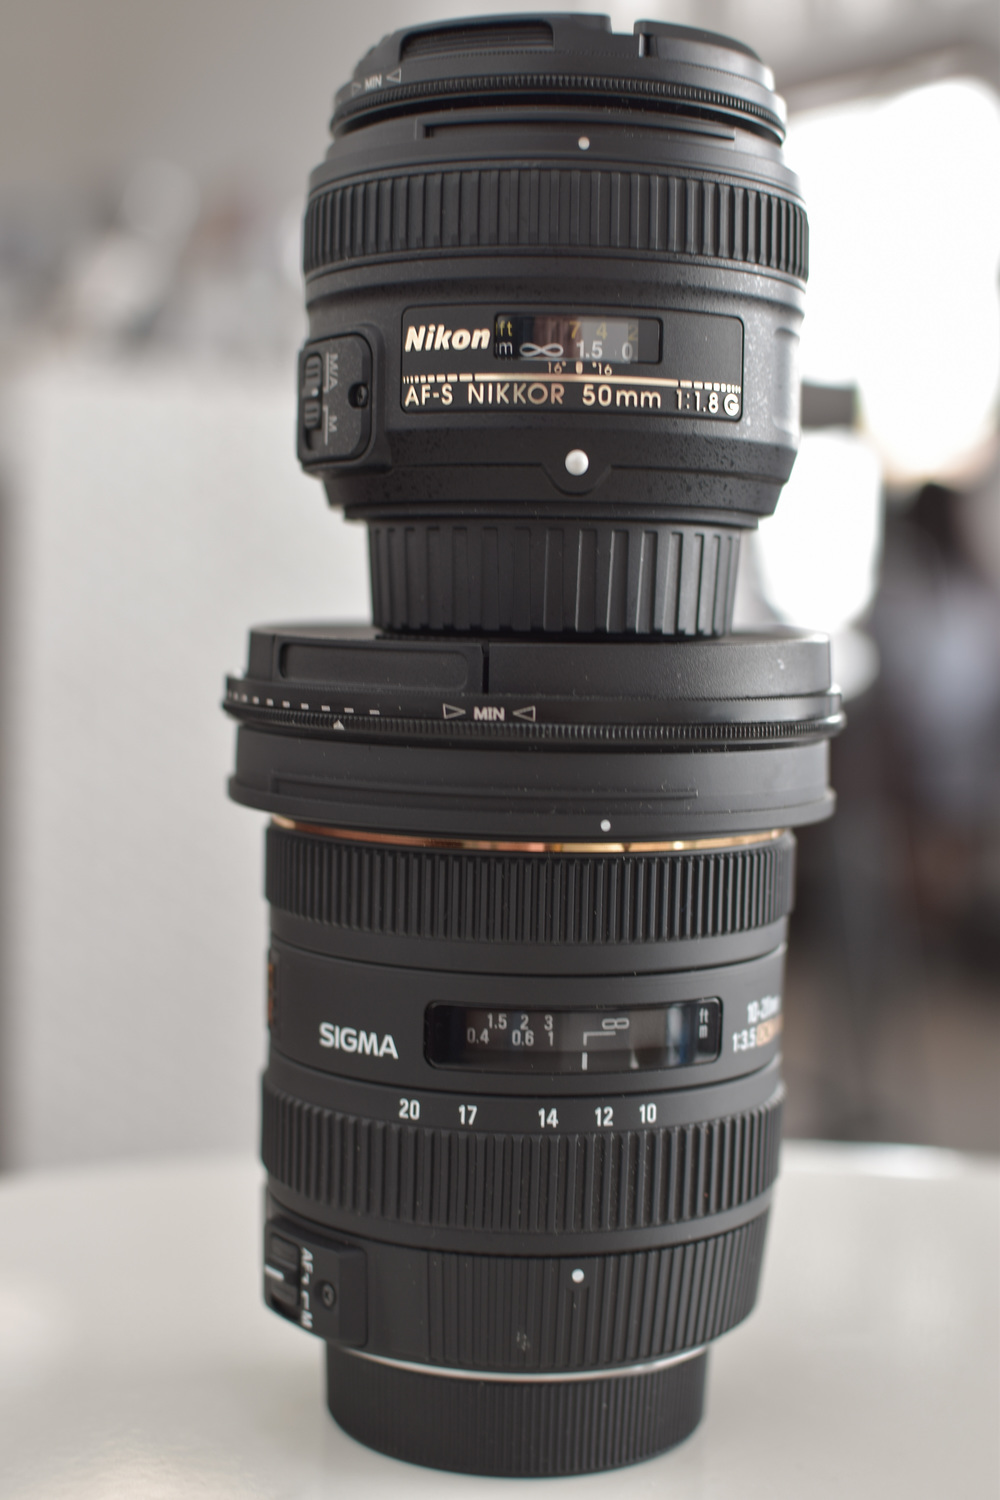 From top to bottom: Nikon Nikkor 50mm 1.8 G and Sigma 10-20 3.5 - Both purchased June, 2016